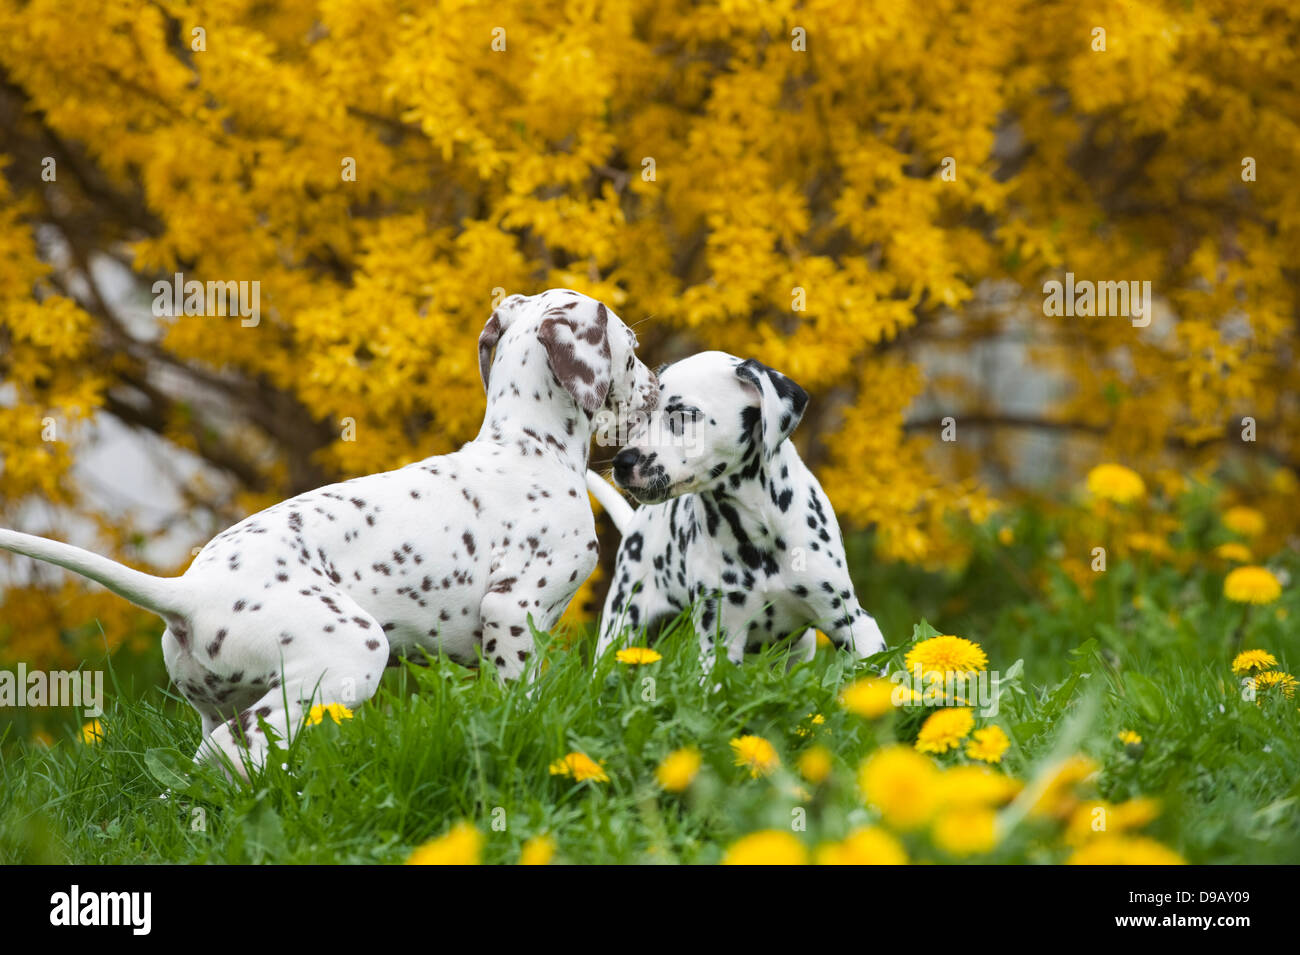 Dalmatian puppies playing in a meadow - Stock Image